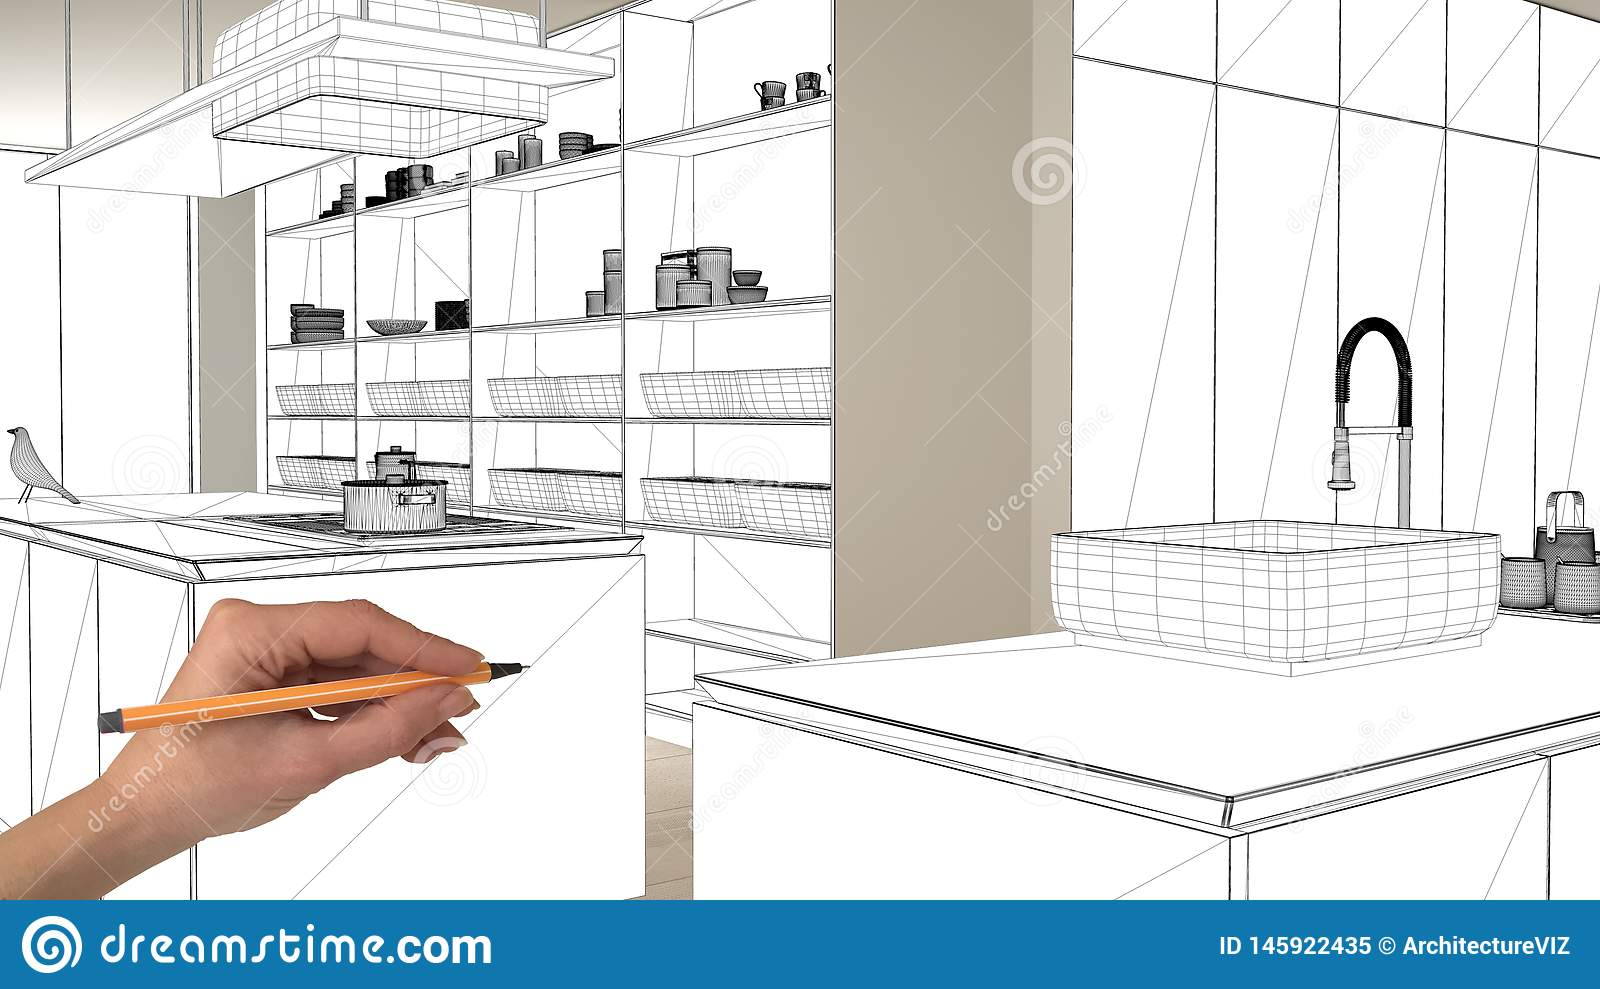 Unfinished Project Under Construction Draft Concept Interior Design Sketch Hand Drawing Blueprint Kitchen Sketch In Real Stock Illustration Illustration Of Draw Abstract 145922435